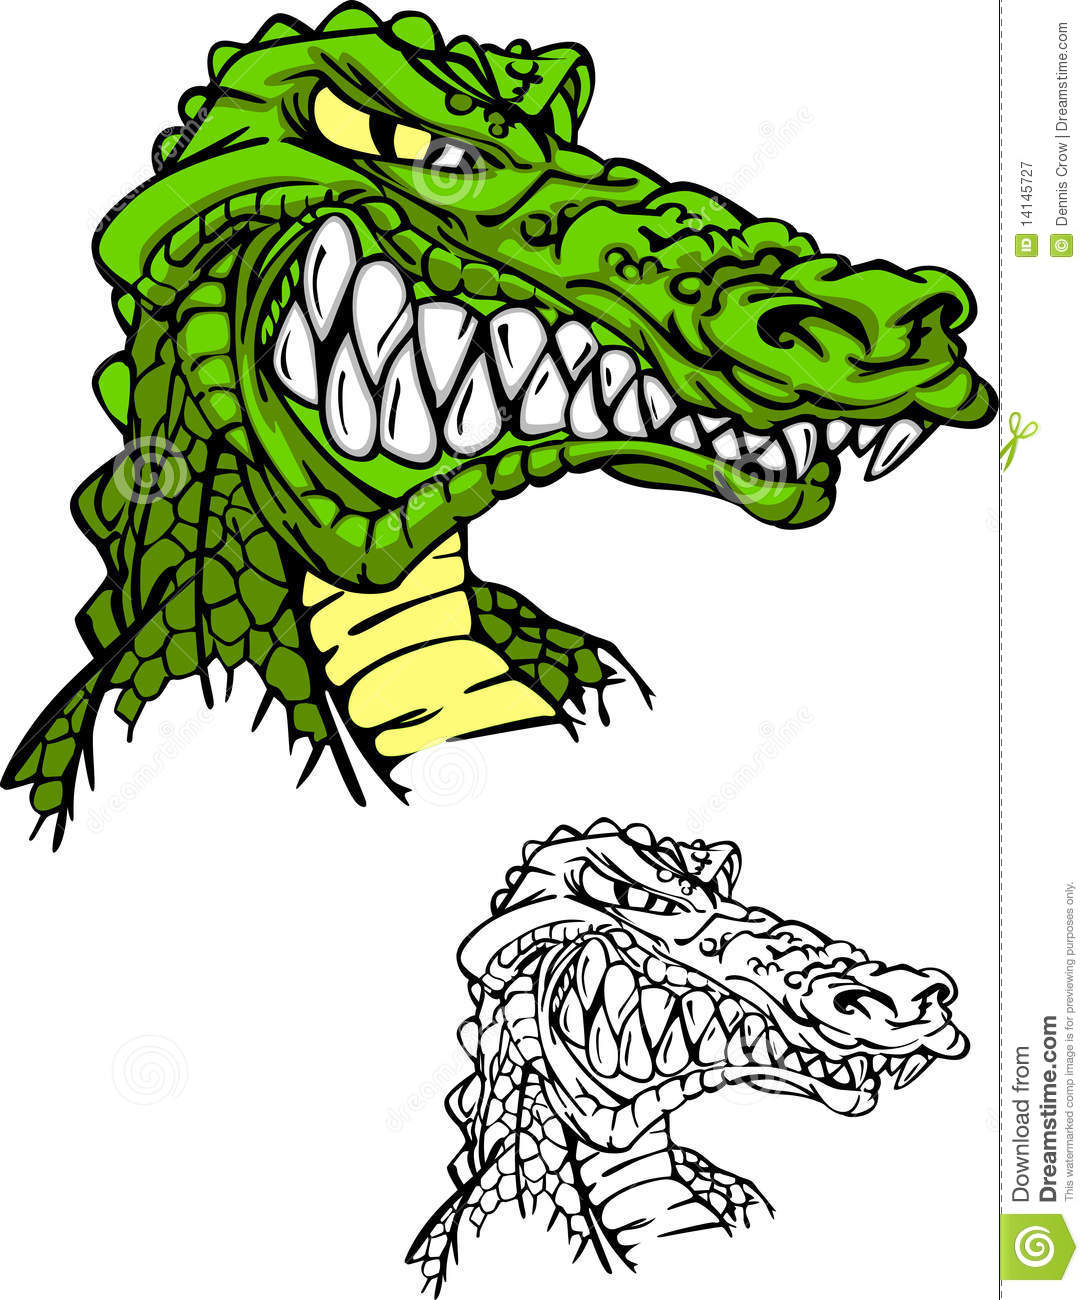 1089x1300 New Gator Logos Free 66 In Awesome Logos With Gator Logos Free